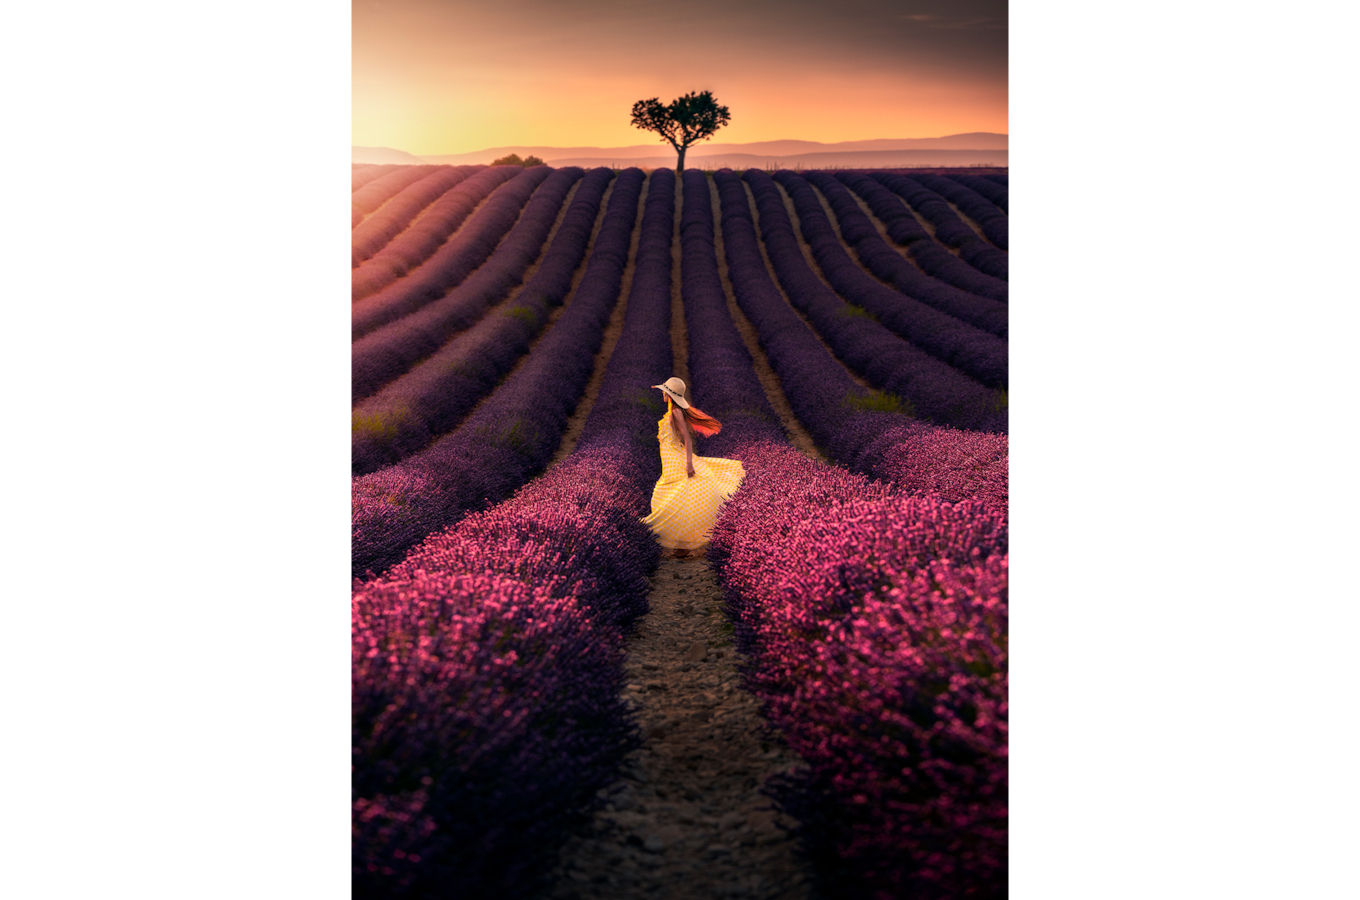 ilhan-eroglu-sony-alpha-7RIII-lady-in-a-field-with-purple-flowers-and-a-solitary-tree-in-the-distance 2